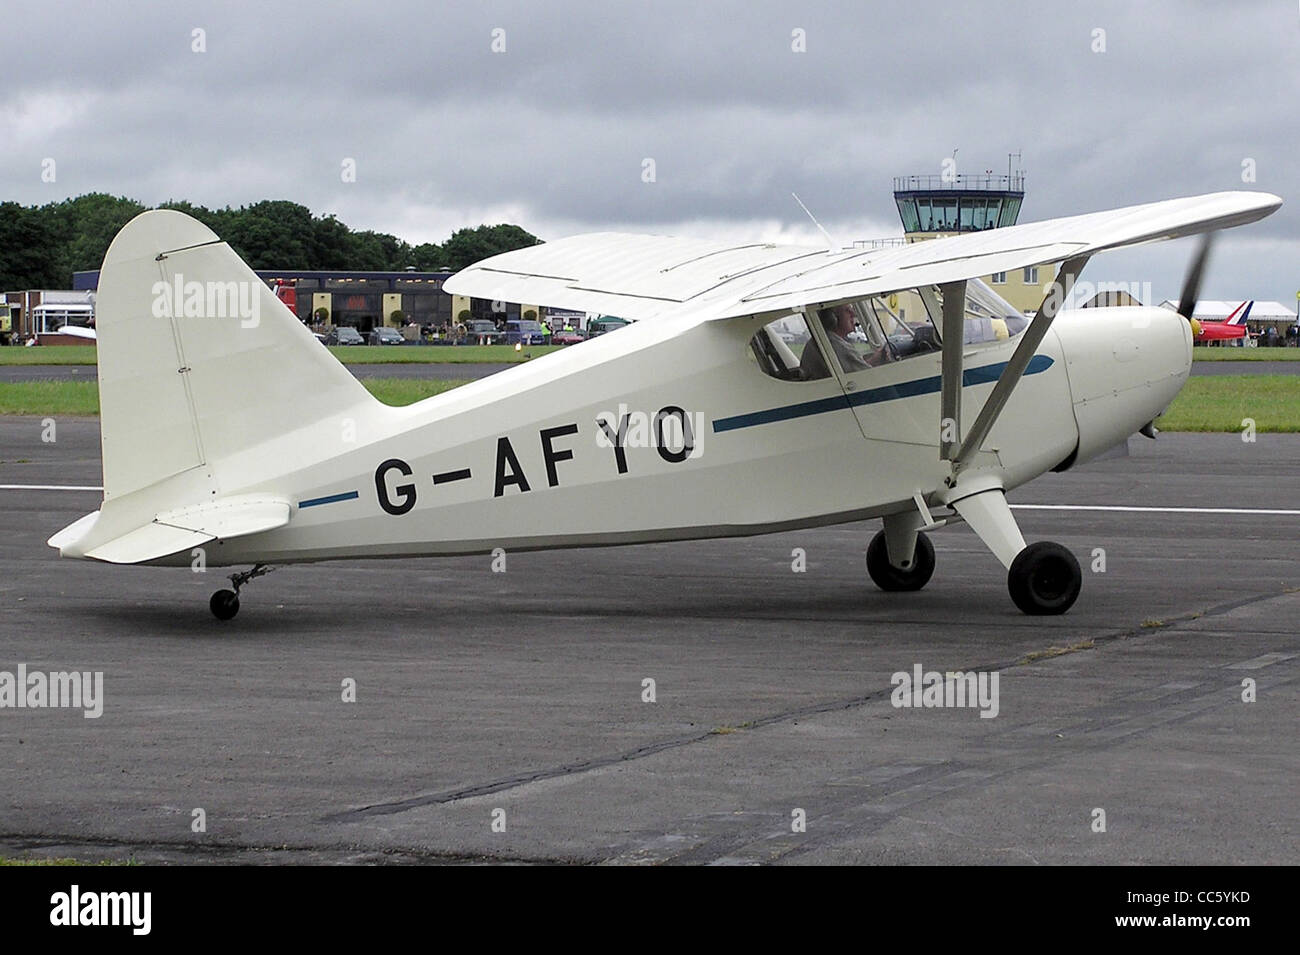 Stinson HW-75 (also called the 105), with UK registration G-AFYO, at Kemble Airfield, Gloucestershire, England. - Stock Image